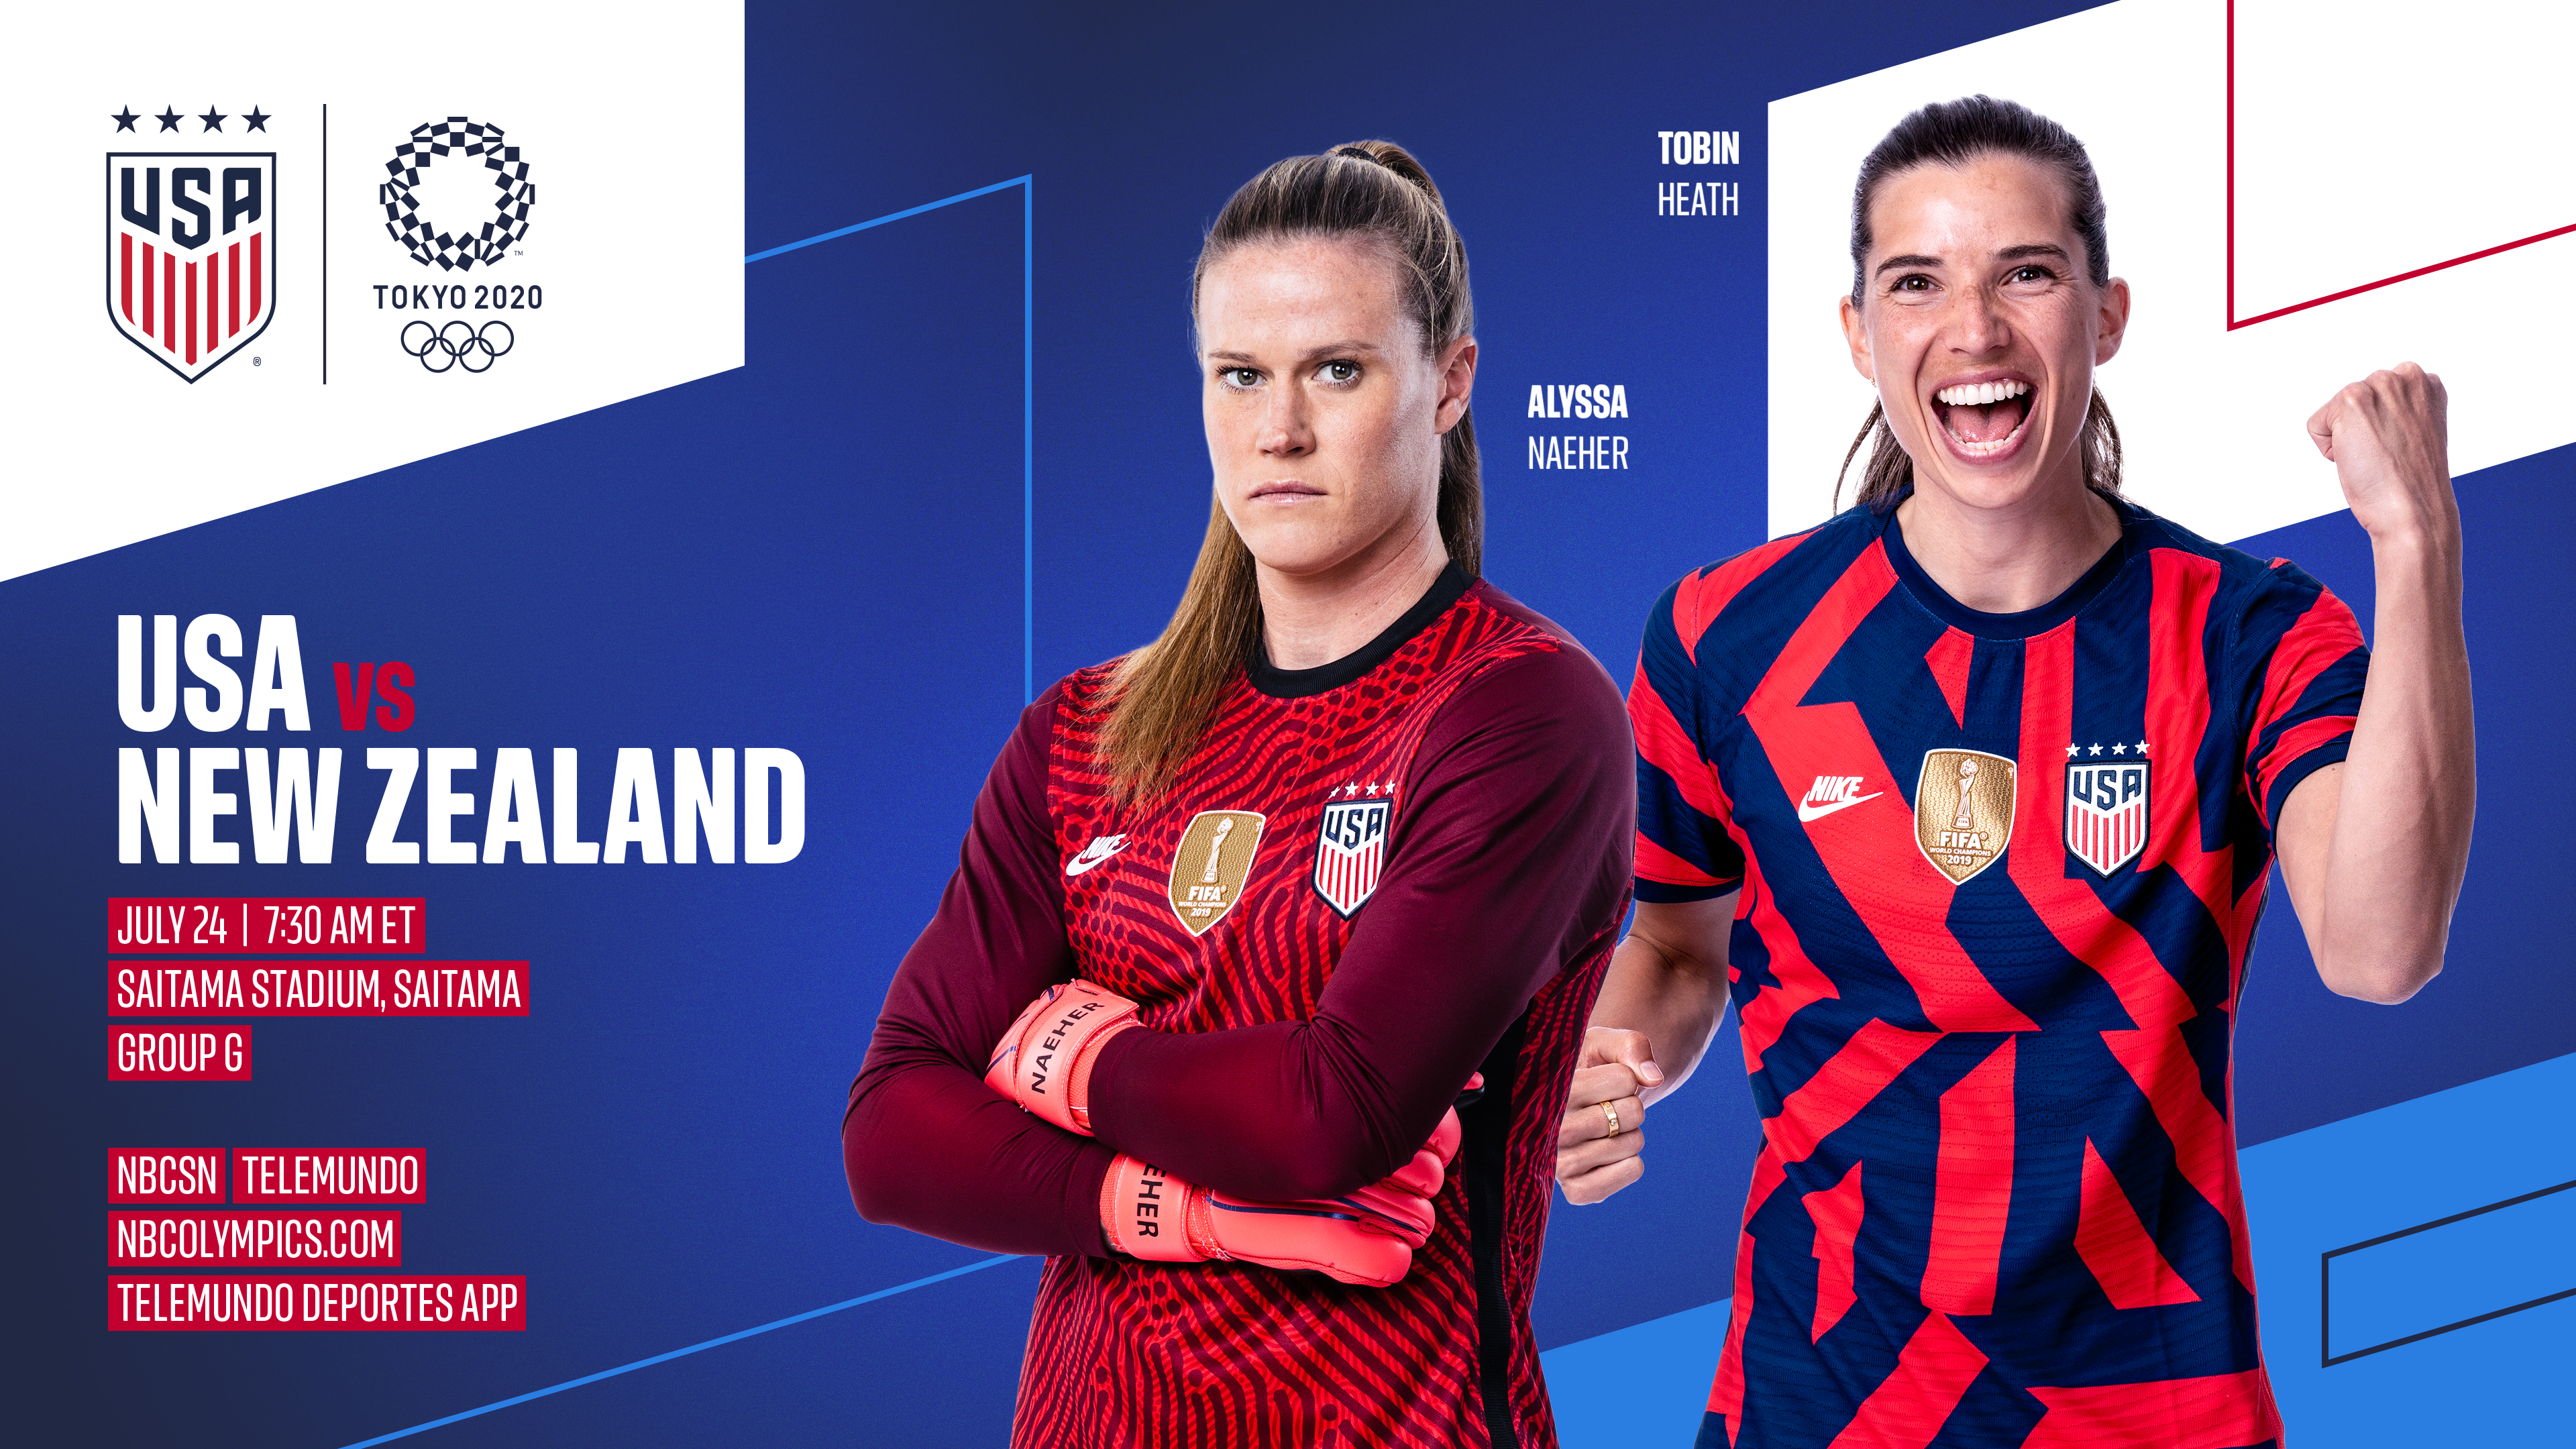 2020 Tokyo Olympics: USA vs. New Zealand - Preview, Schedule, TV Channels & Start Time